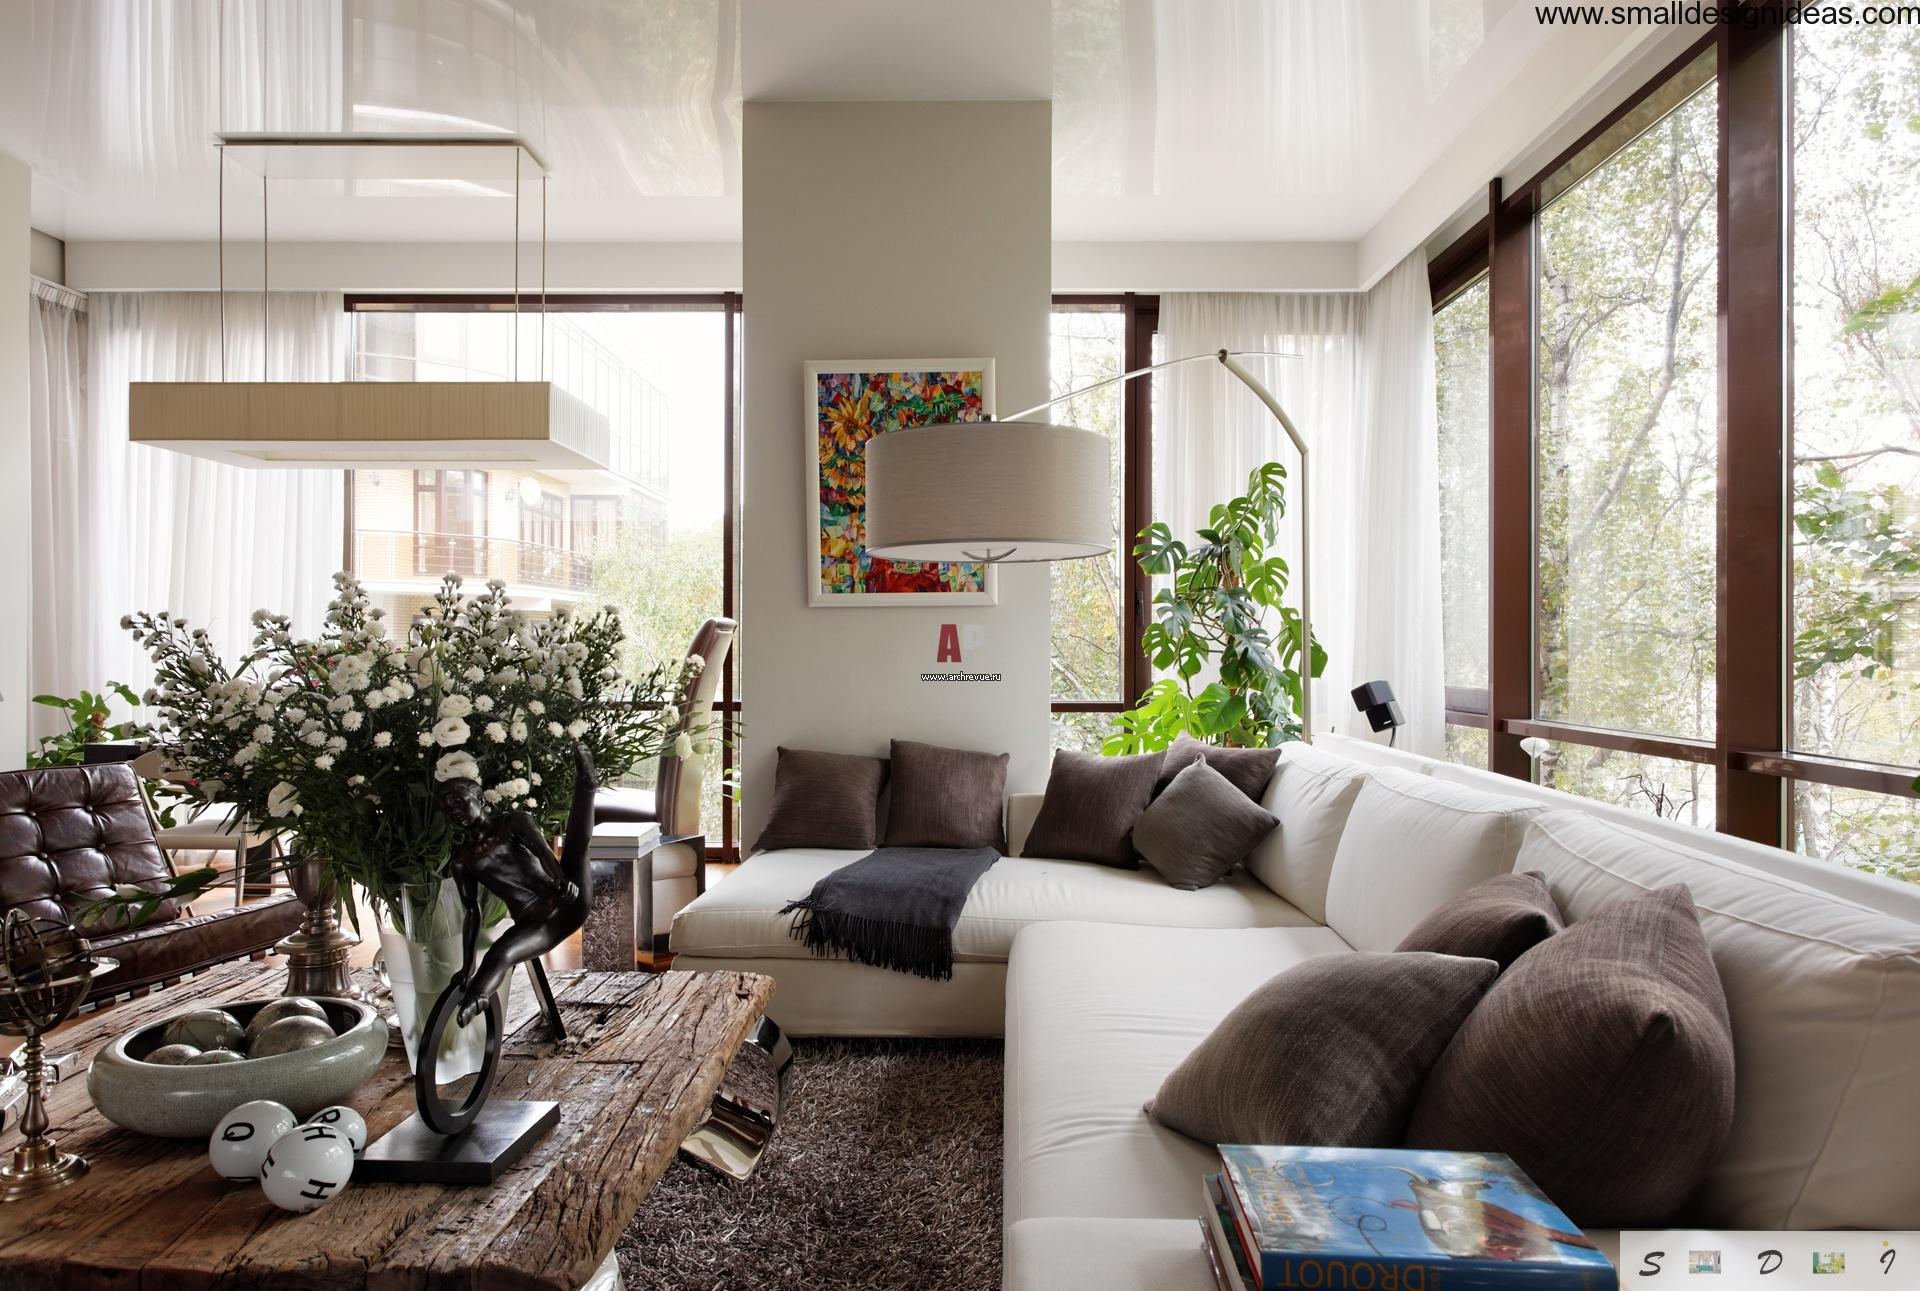 Interior design challenge eco home - Eco Design And Eclecticism In Modern Apartments Are Very Near To One Another